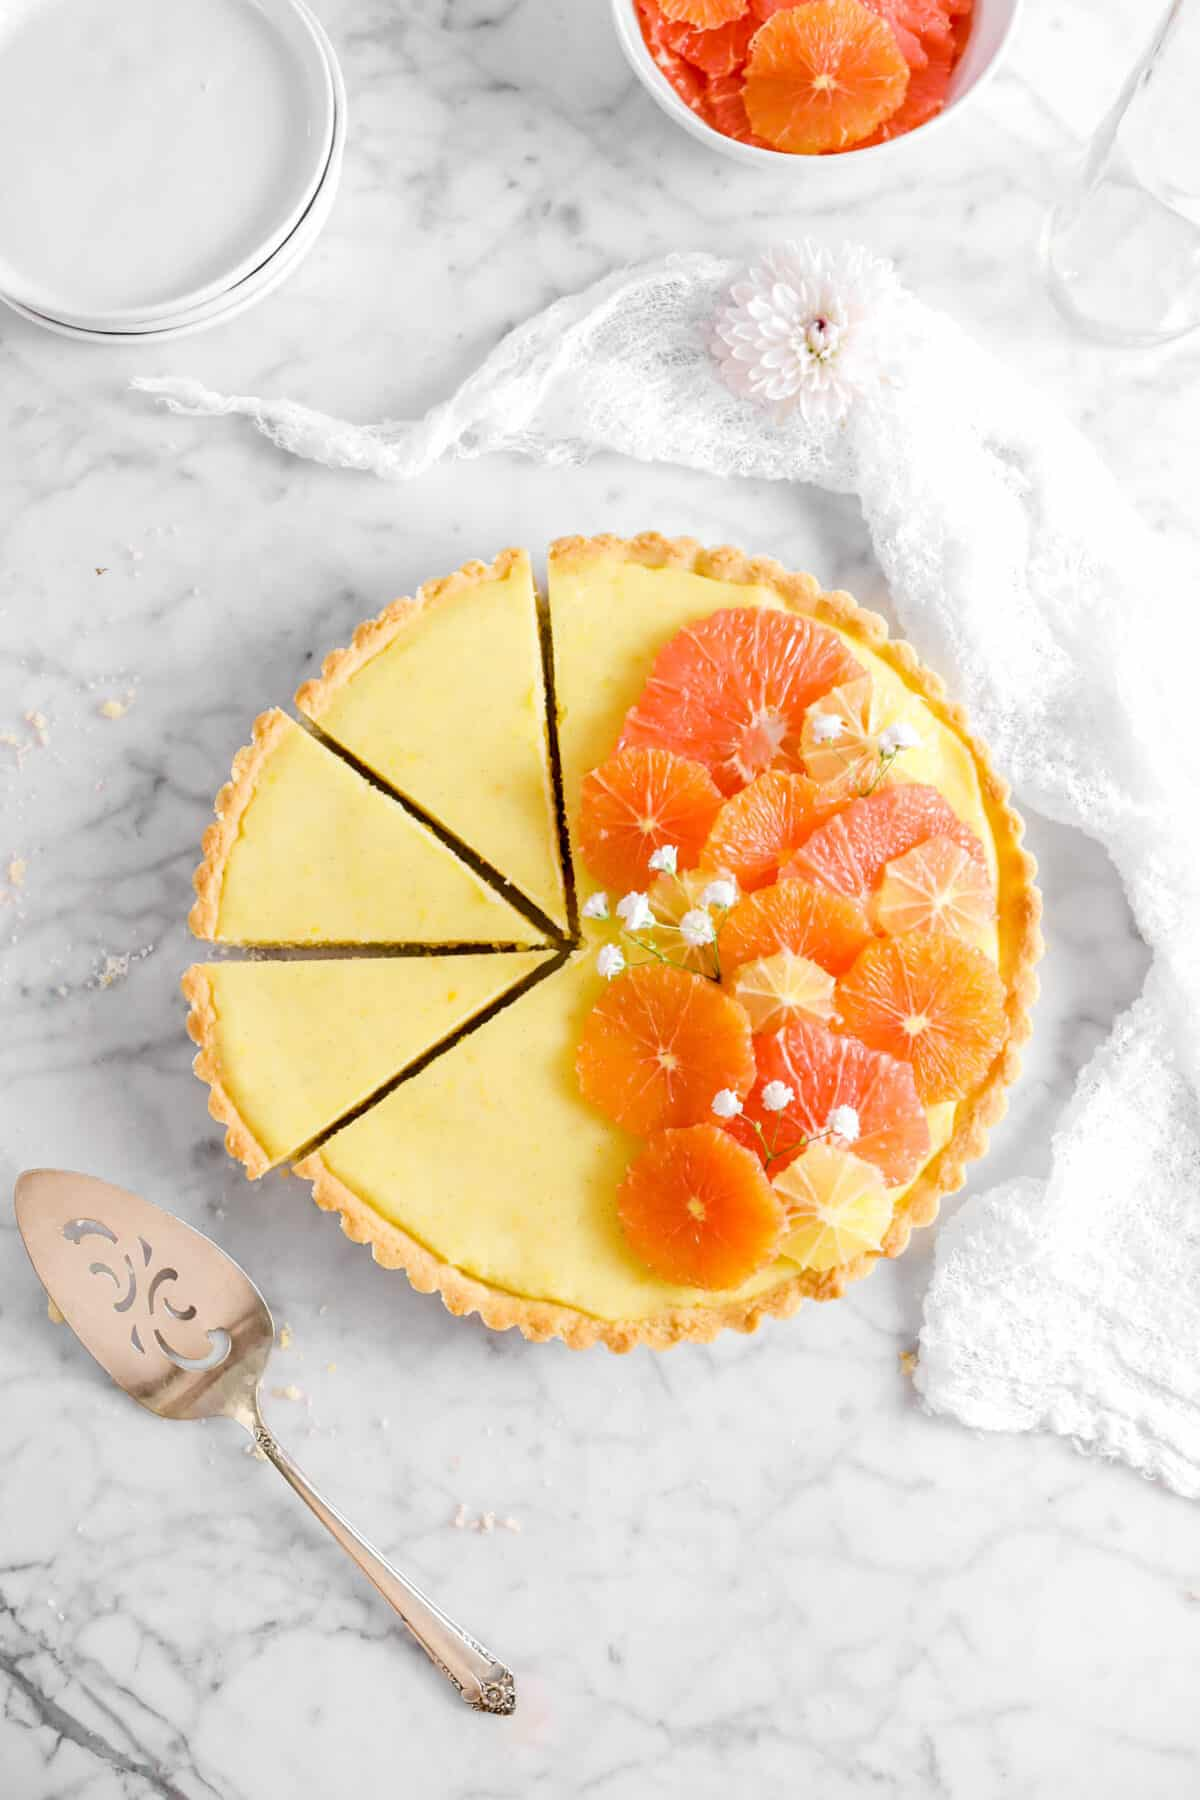 overhead shot of citrus tart with cake knife, white napkin, flowers, and white paltes